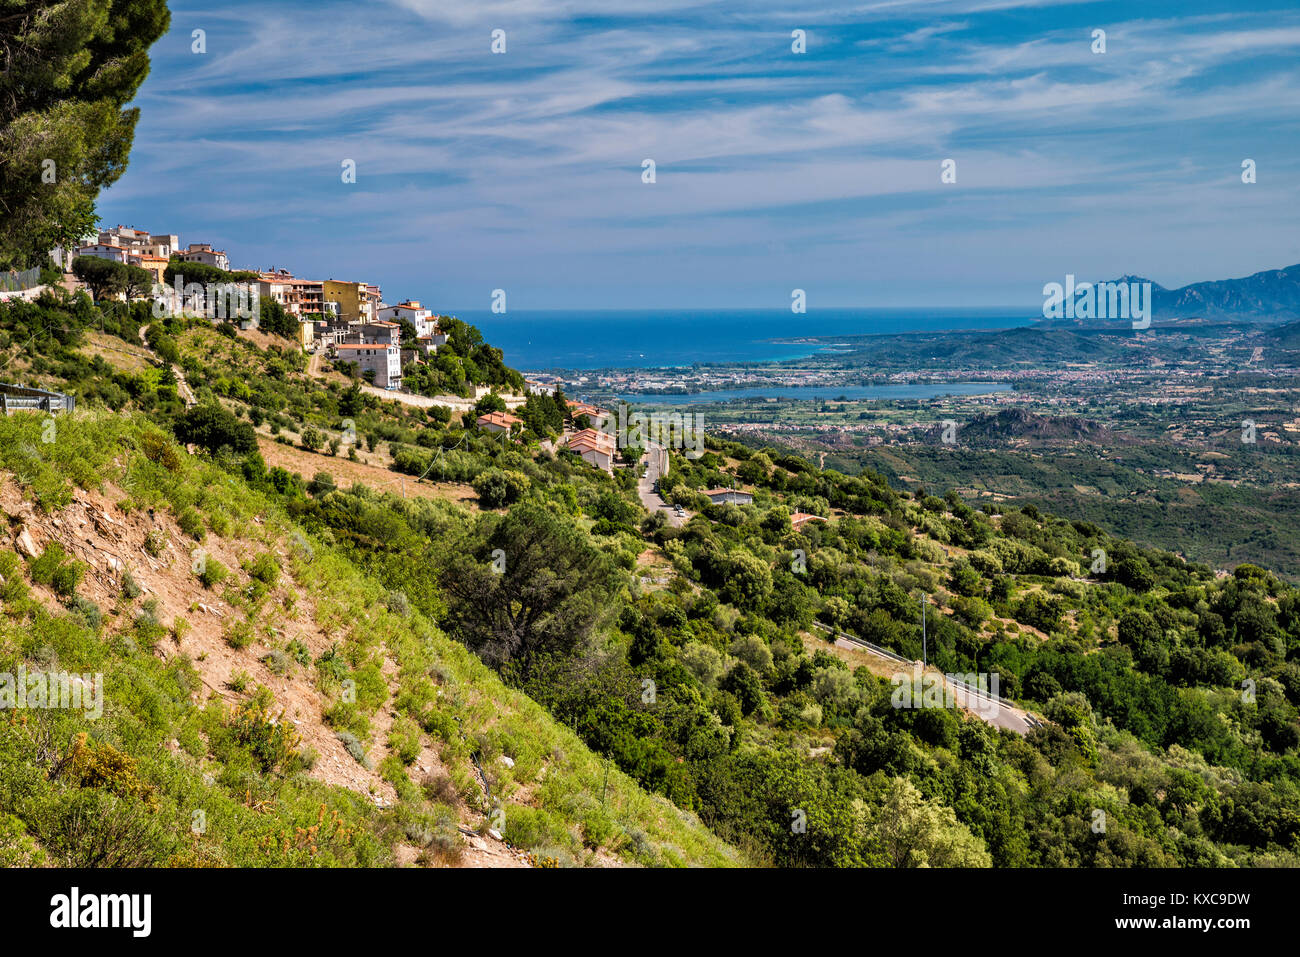 Town of Baunei, with town of Tortoli at Tyrrhenian Sea coast far in distance, Nuoro province, Sardinia, Italy - Stock Image